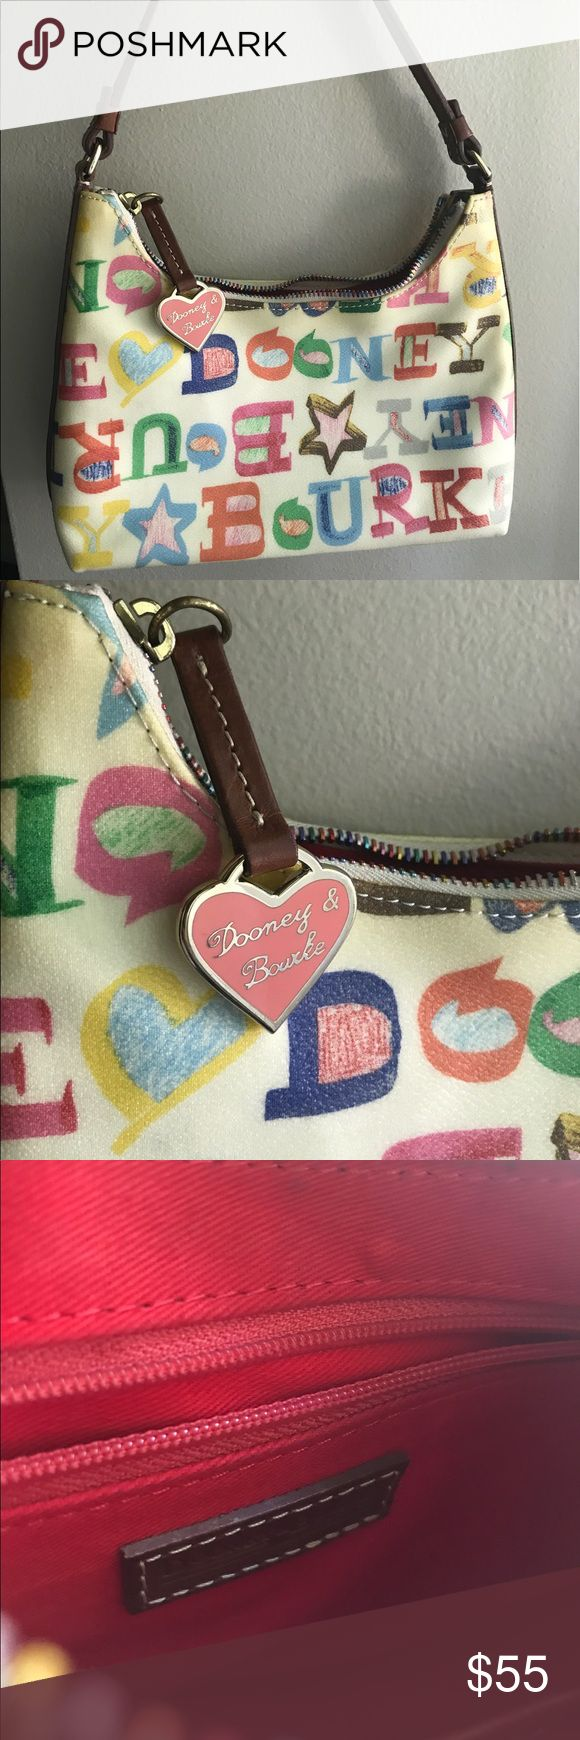 DOONEY&BOURKE White Doodle Mini Shoulder Bag Authentic designer handbag that is like NEW! Genuine White to cream colored leather with colorful Dooney&Bourke lettering. The inside is a beautiful red color and includes a zip pouch and a pocket pouch. This classic handbag is in excellent condition with no stains, scuffs, or scratches! Dooney & Bourke Bags Shoulder Bags